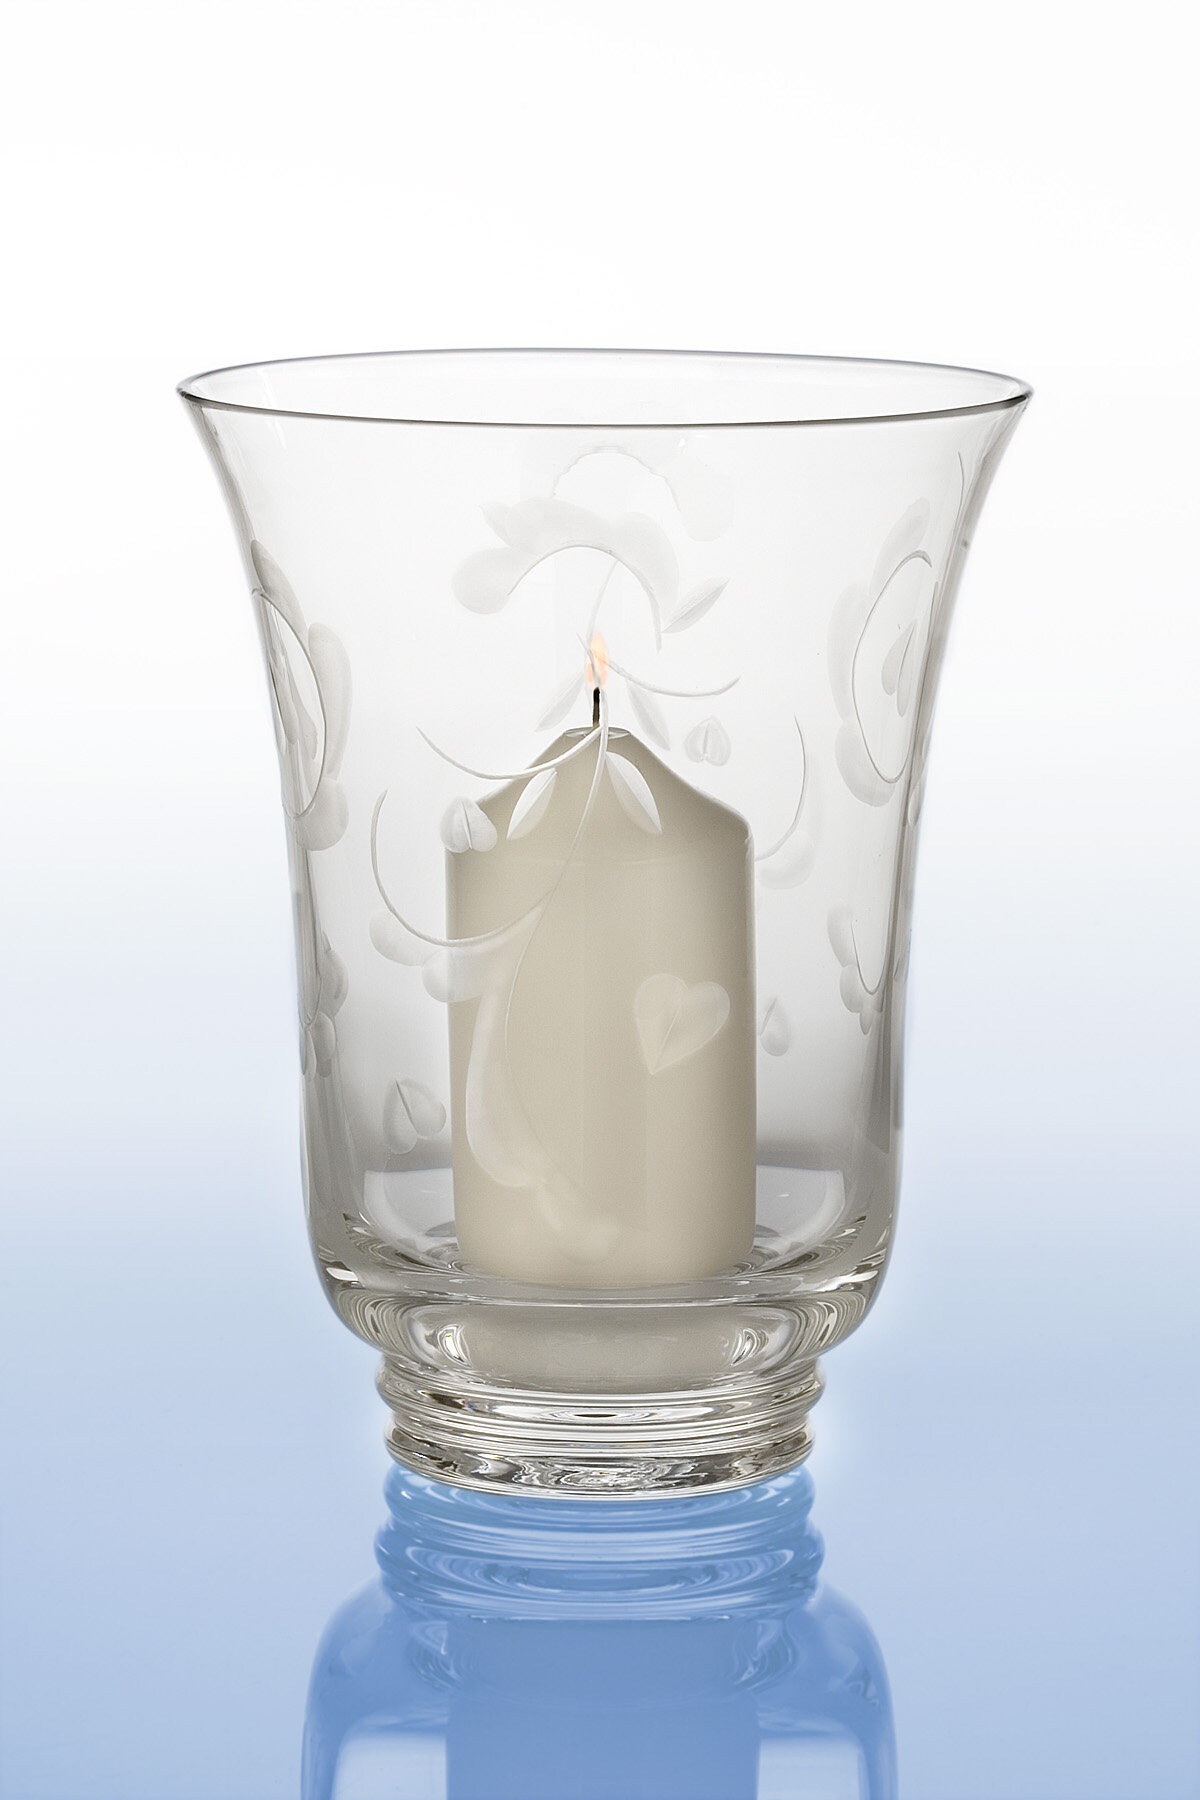 Marquis by Waterford - 143059 - Yours Truly Vase with Candle